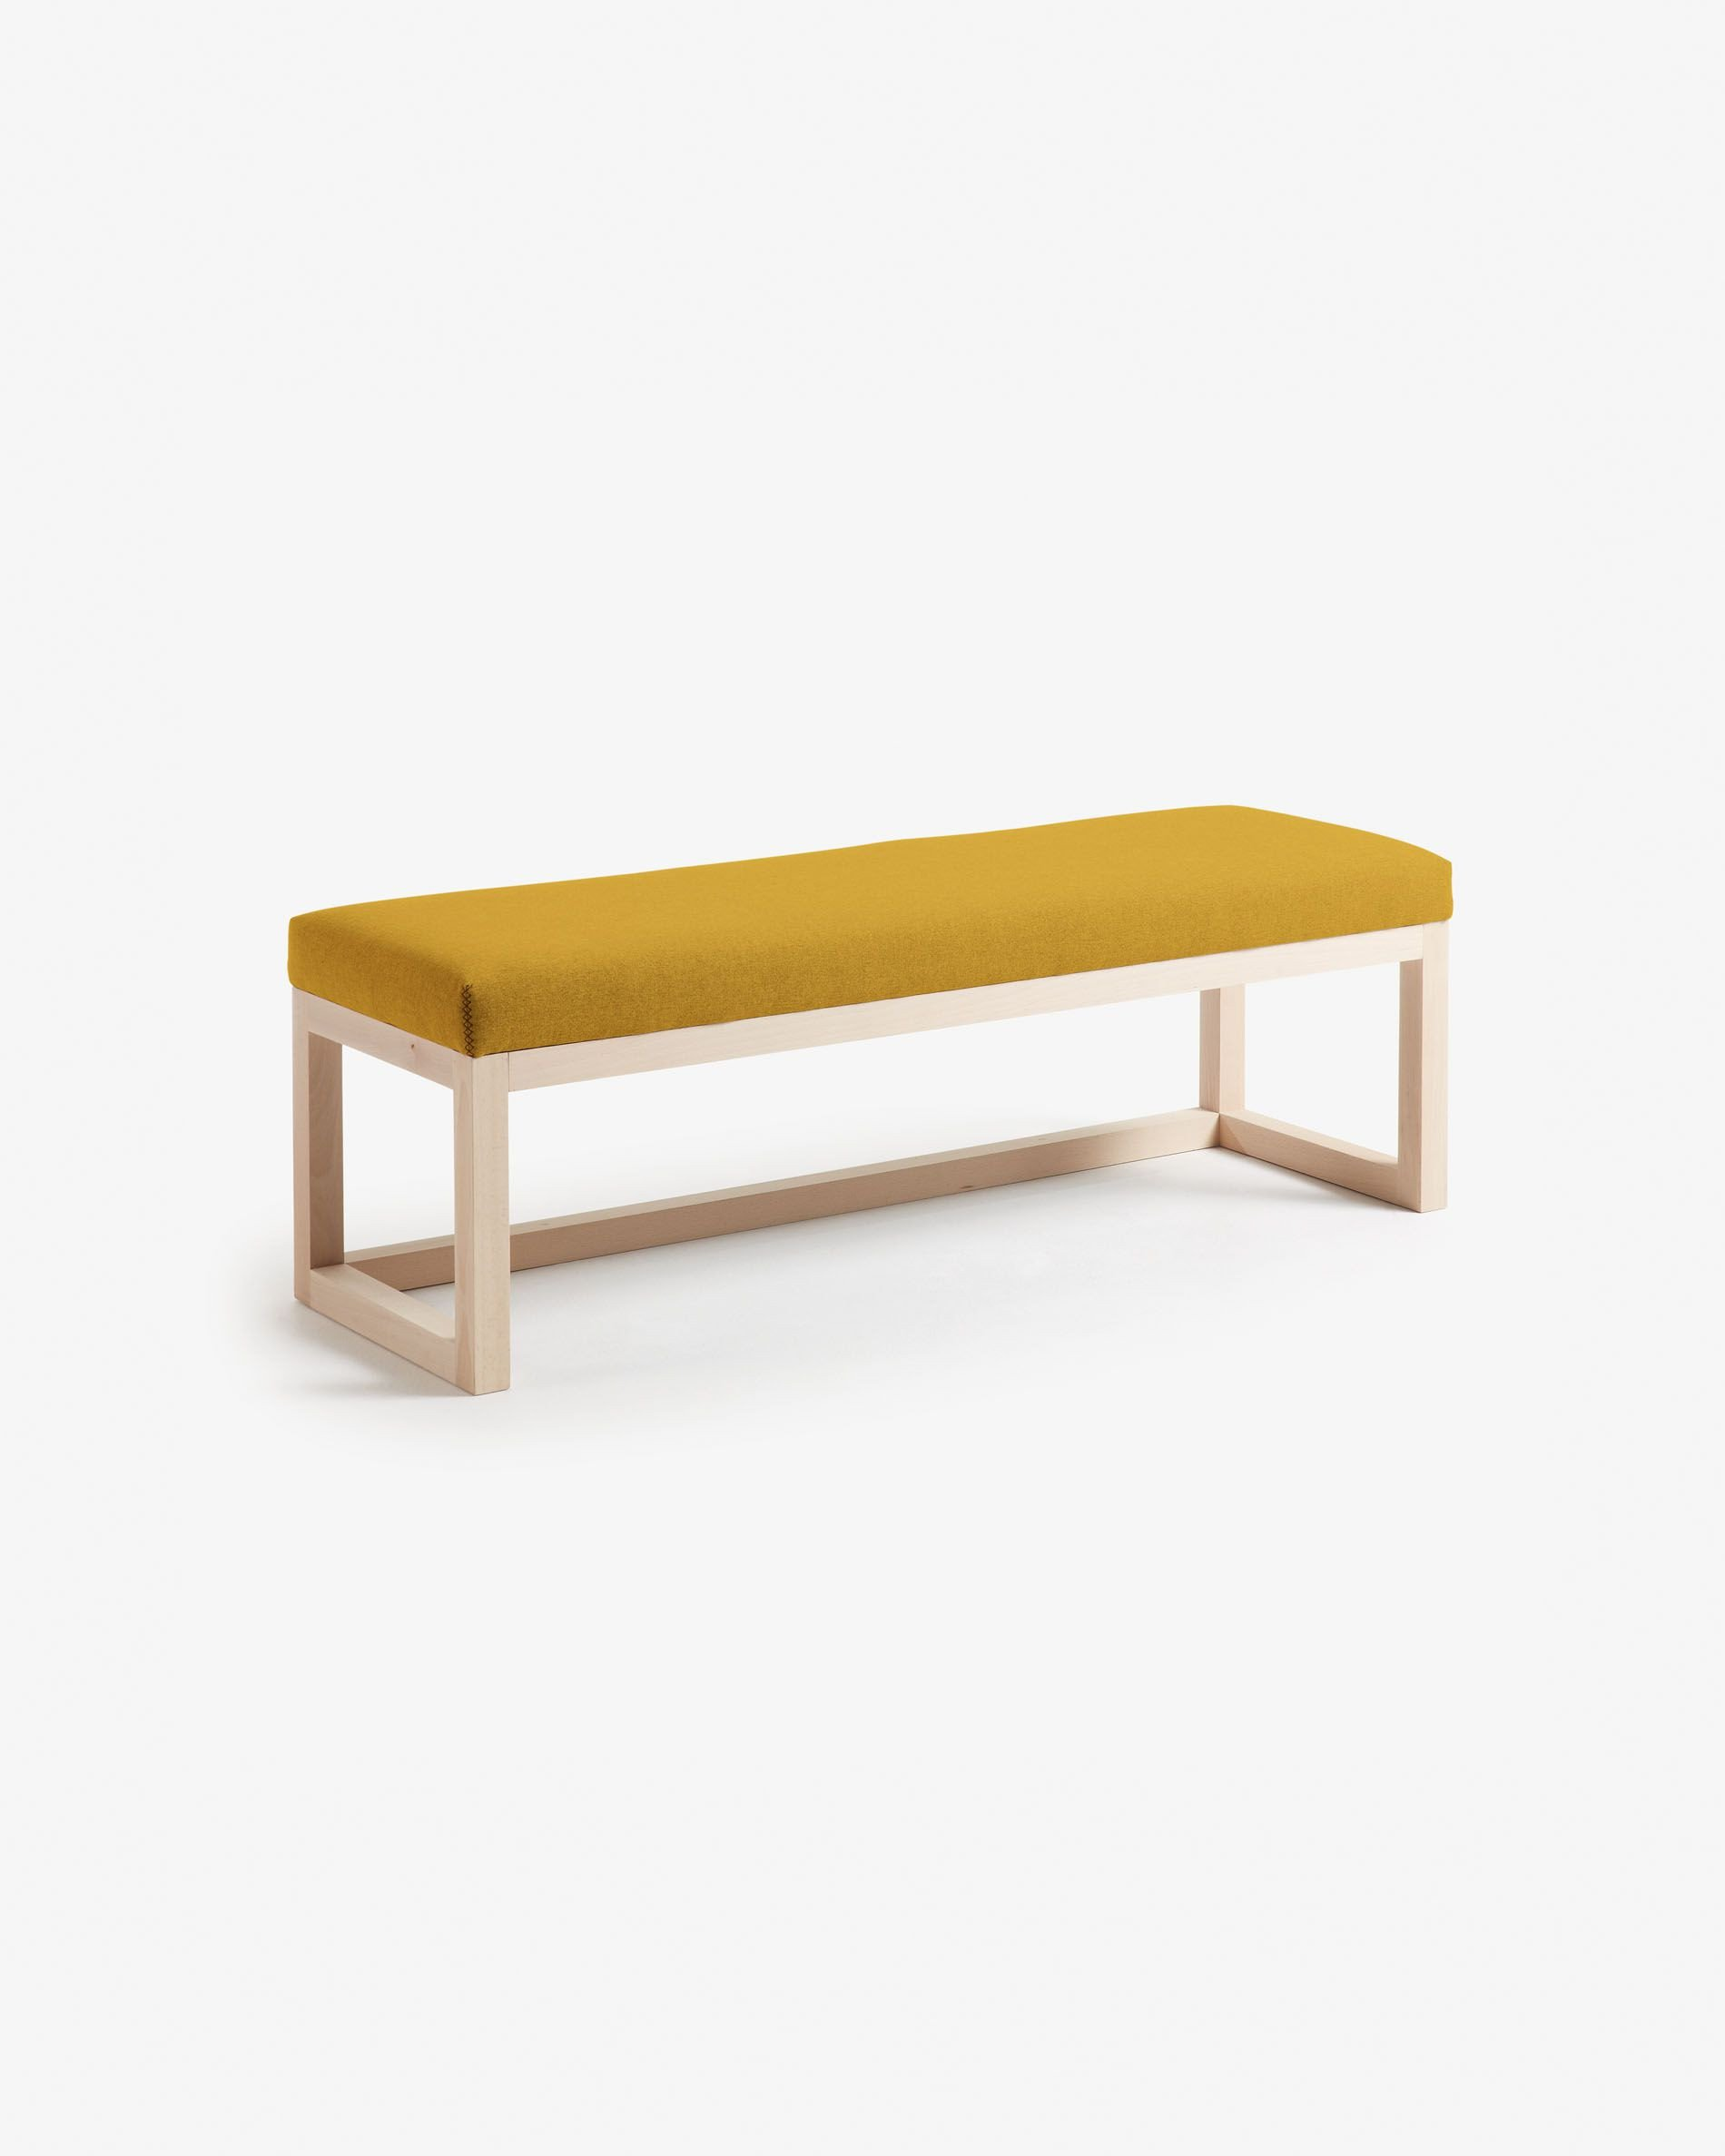 Fabric Bench for Bedroom Inspirational Mustard Loya Bench 128 Cm